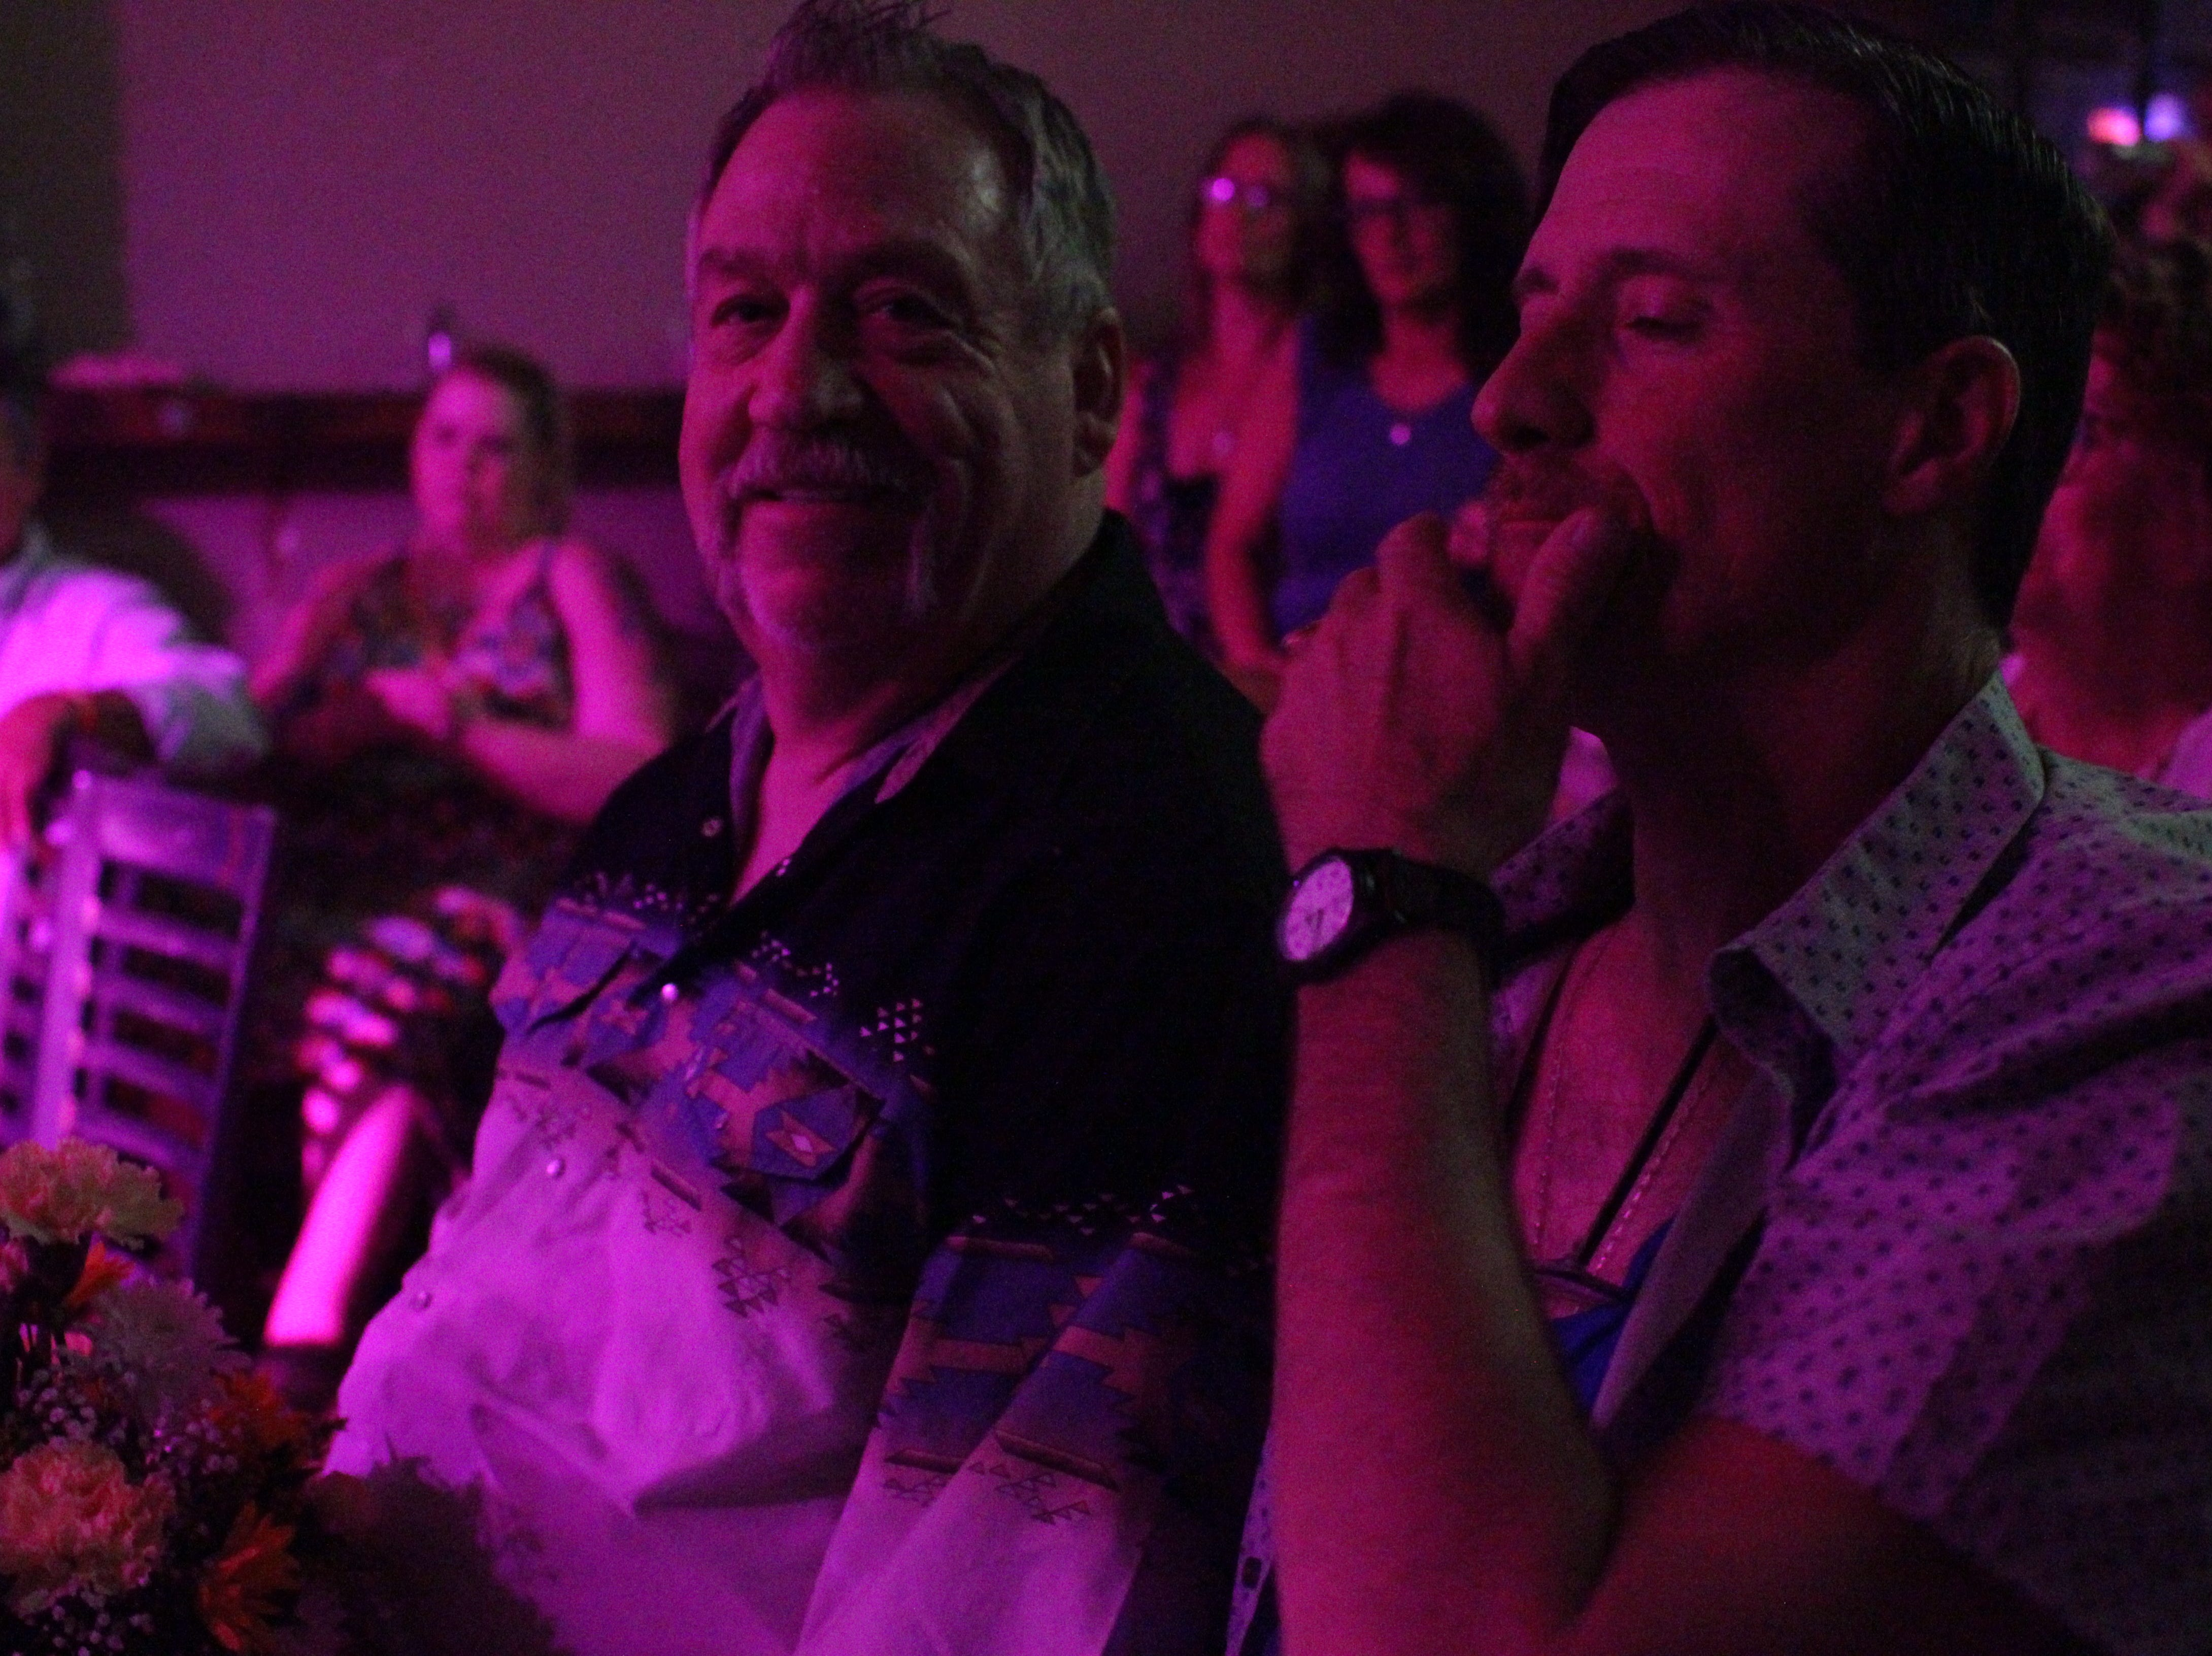 Tom Hinton, 66, was honored at the drag show for his contribution to the LGBTQ+ community.